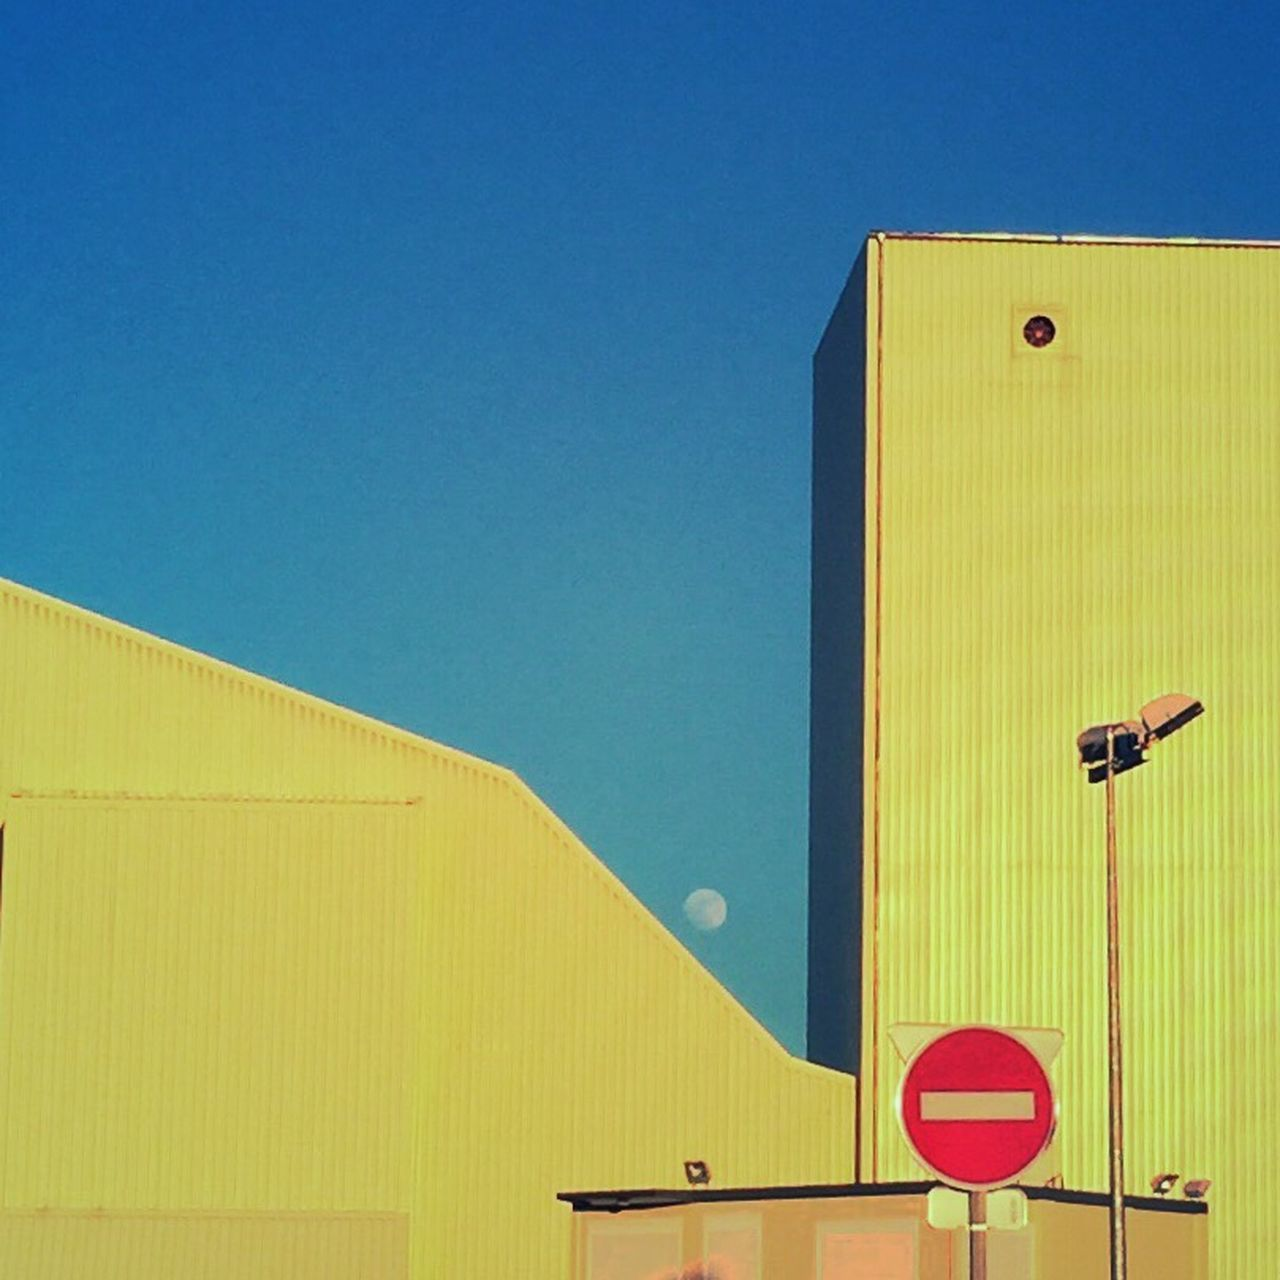 Clear Sky Low Angle View Yellow No People Building Exterior Built Structure Outdoors Architecture Day Close-up Sky Factoryimage Factory Zone Factory Building Sunset Moonlight Clear Sky Factory Yellow Light Scenics Modern Building